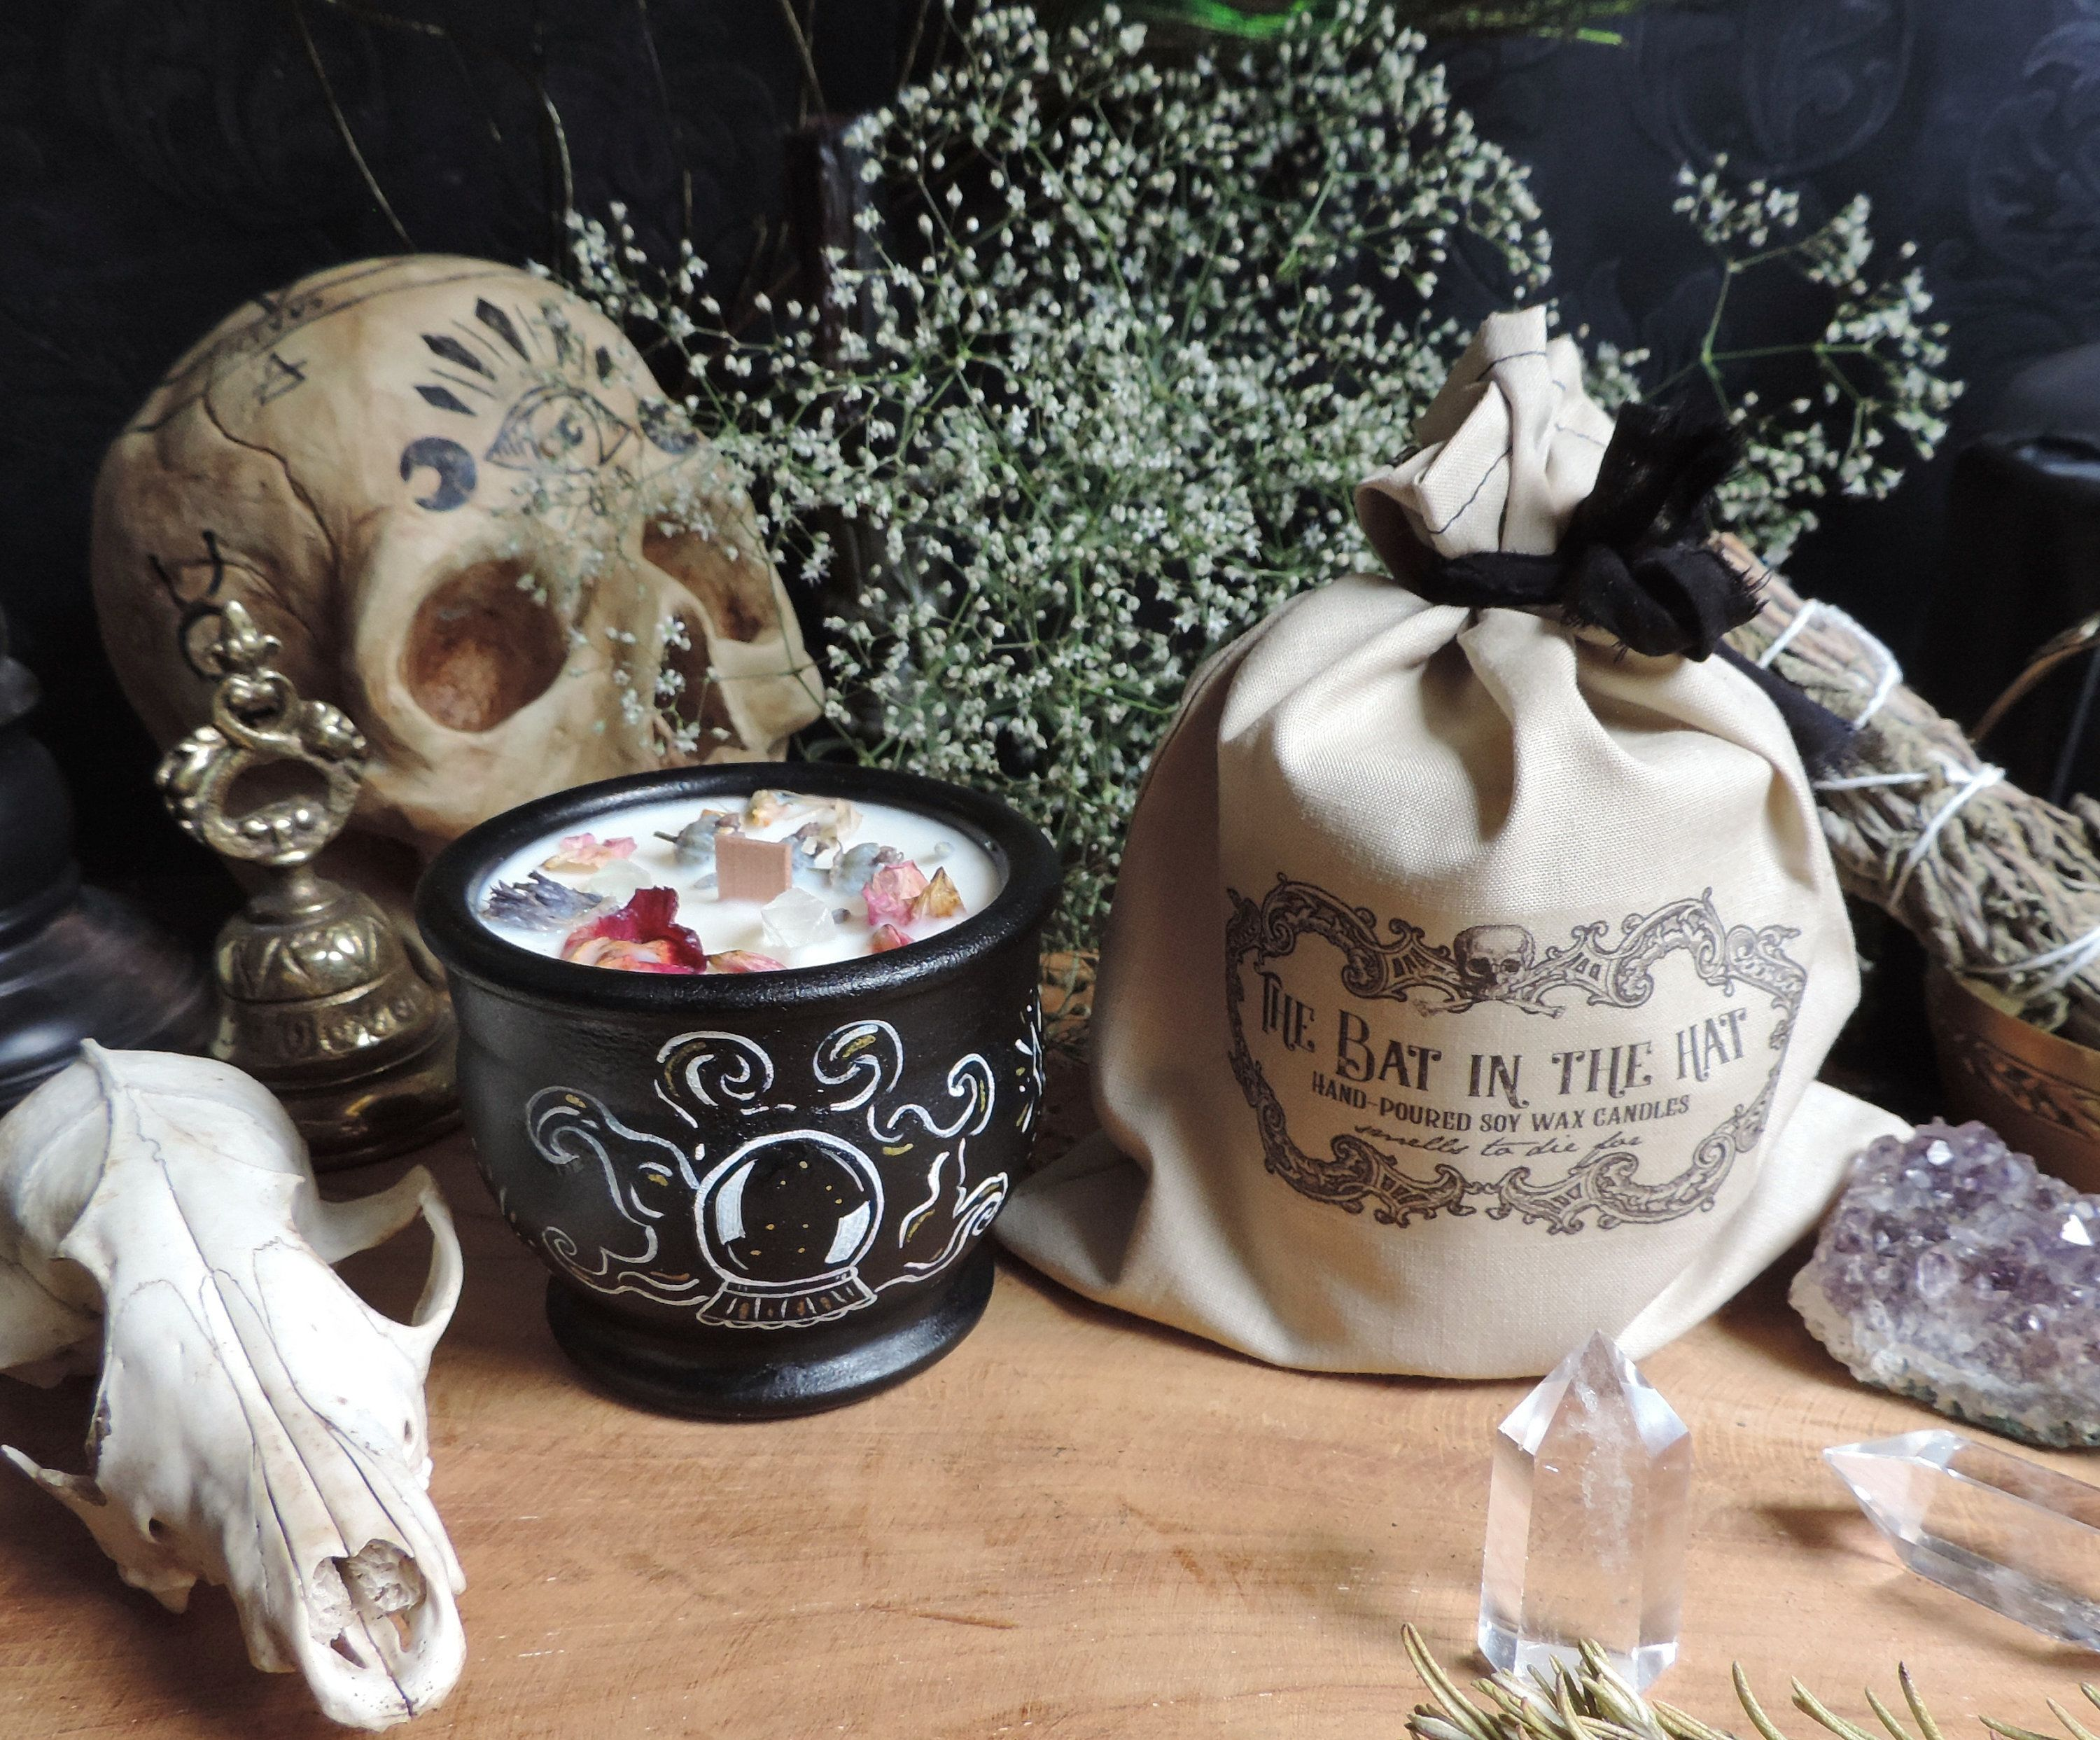 How to Find the Best Halloween Gifts advise